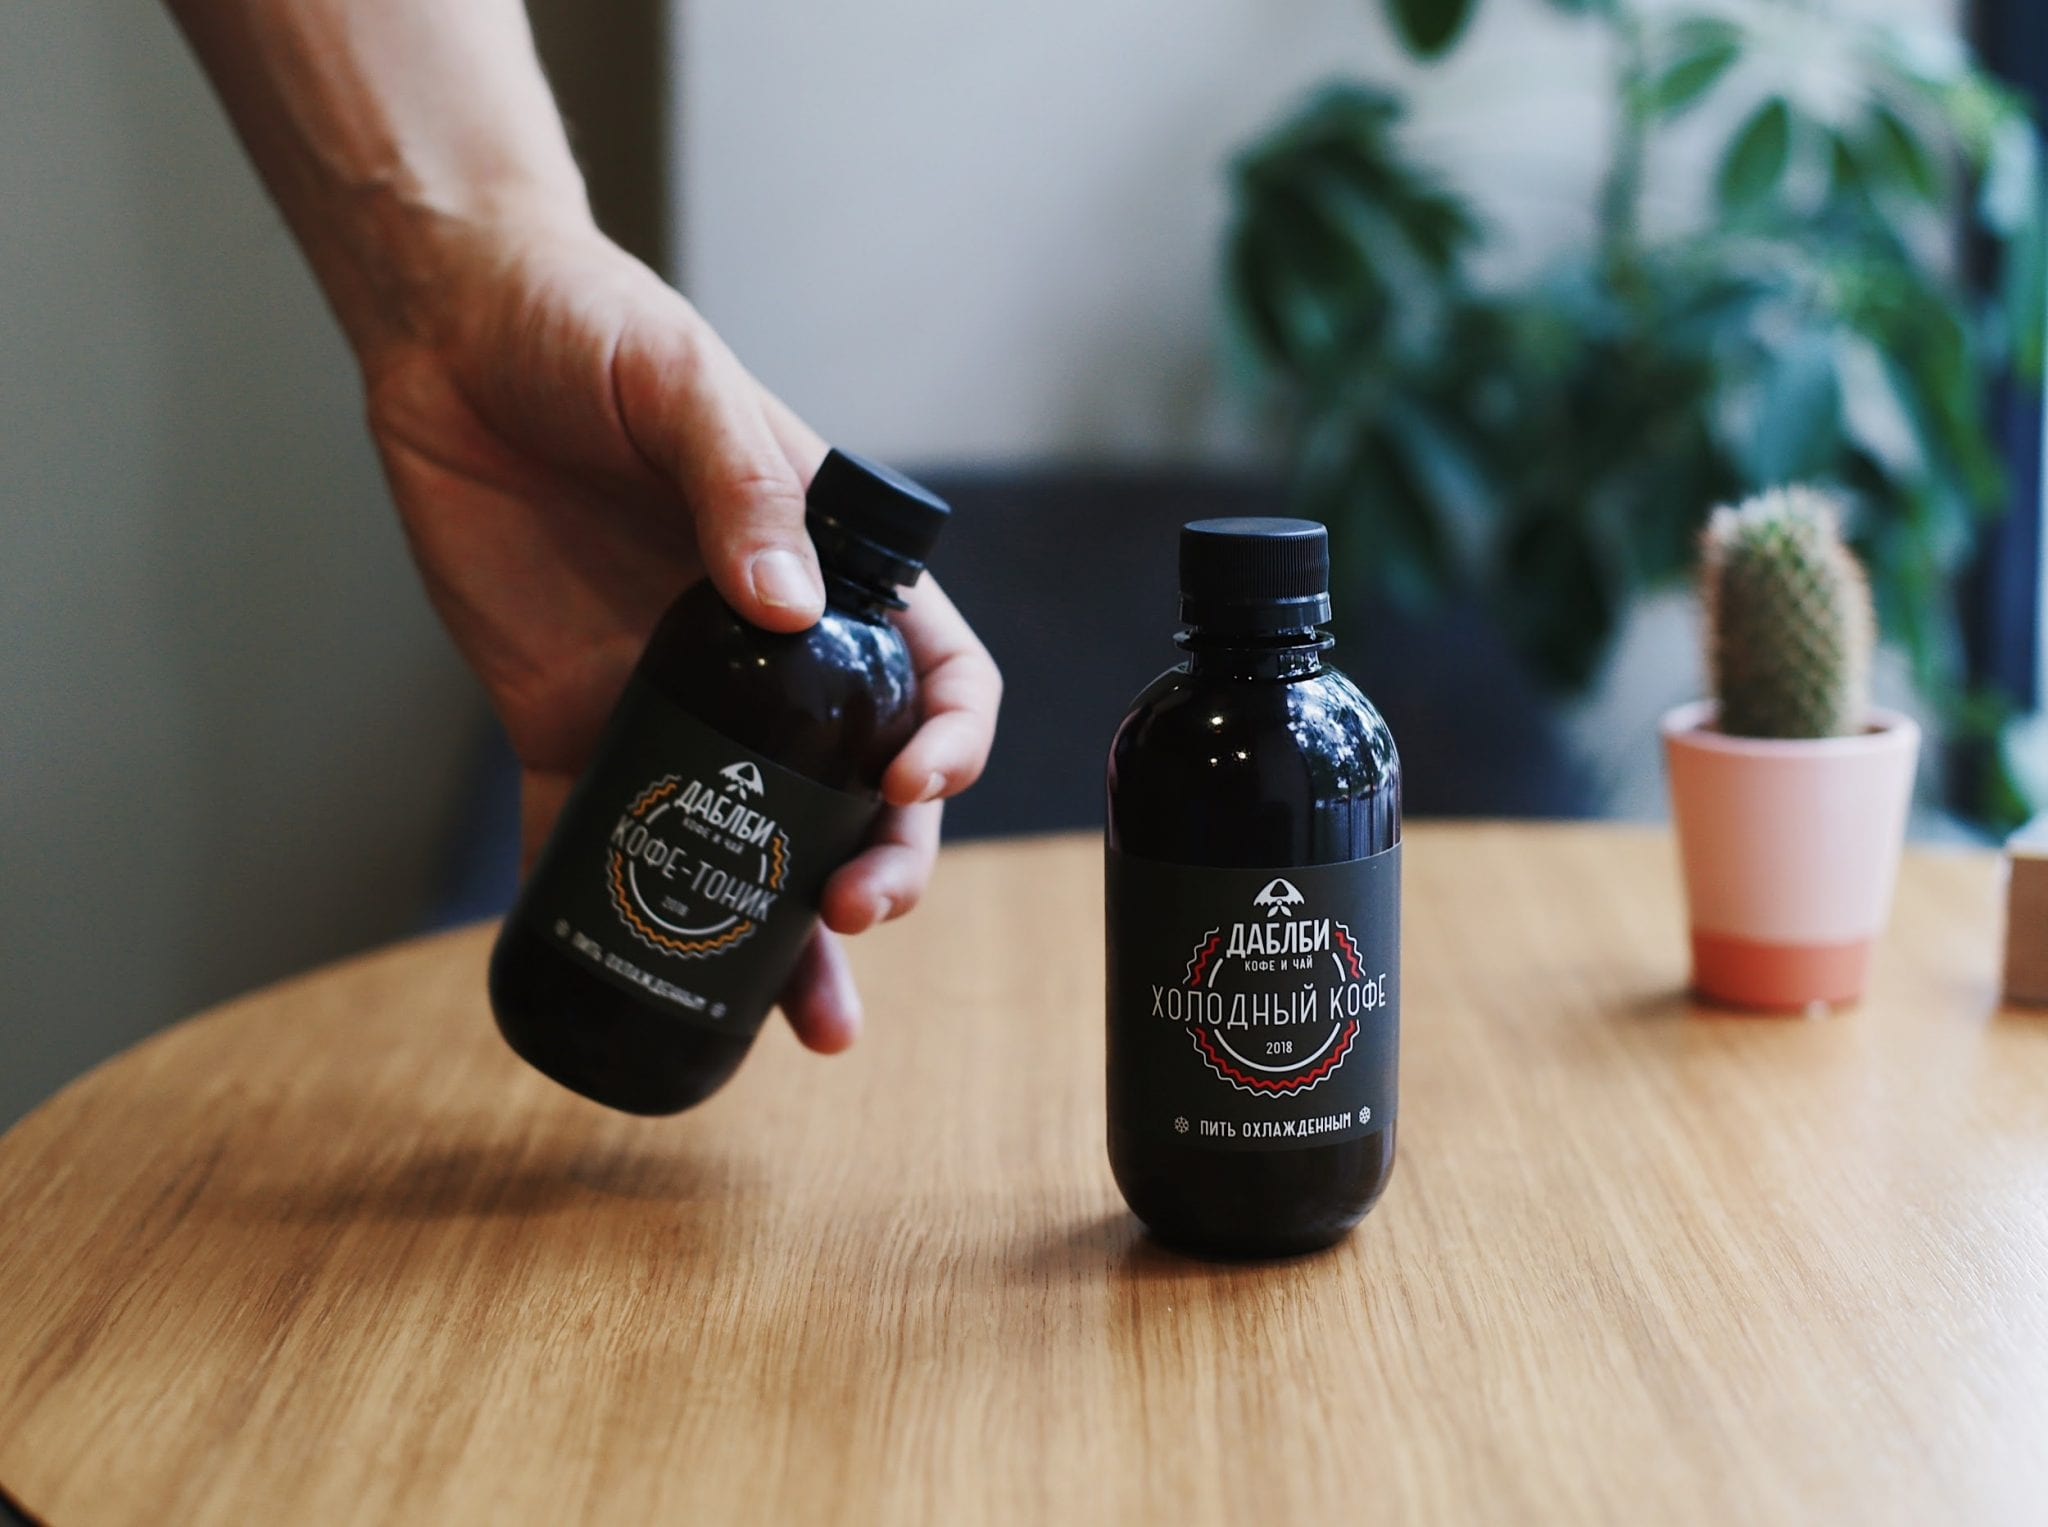 Two bottles of cold brew being shown in a coffee shop